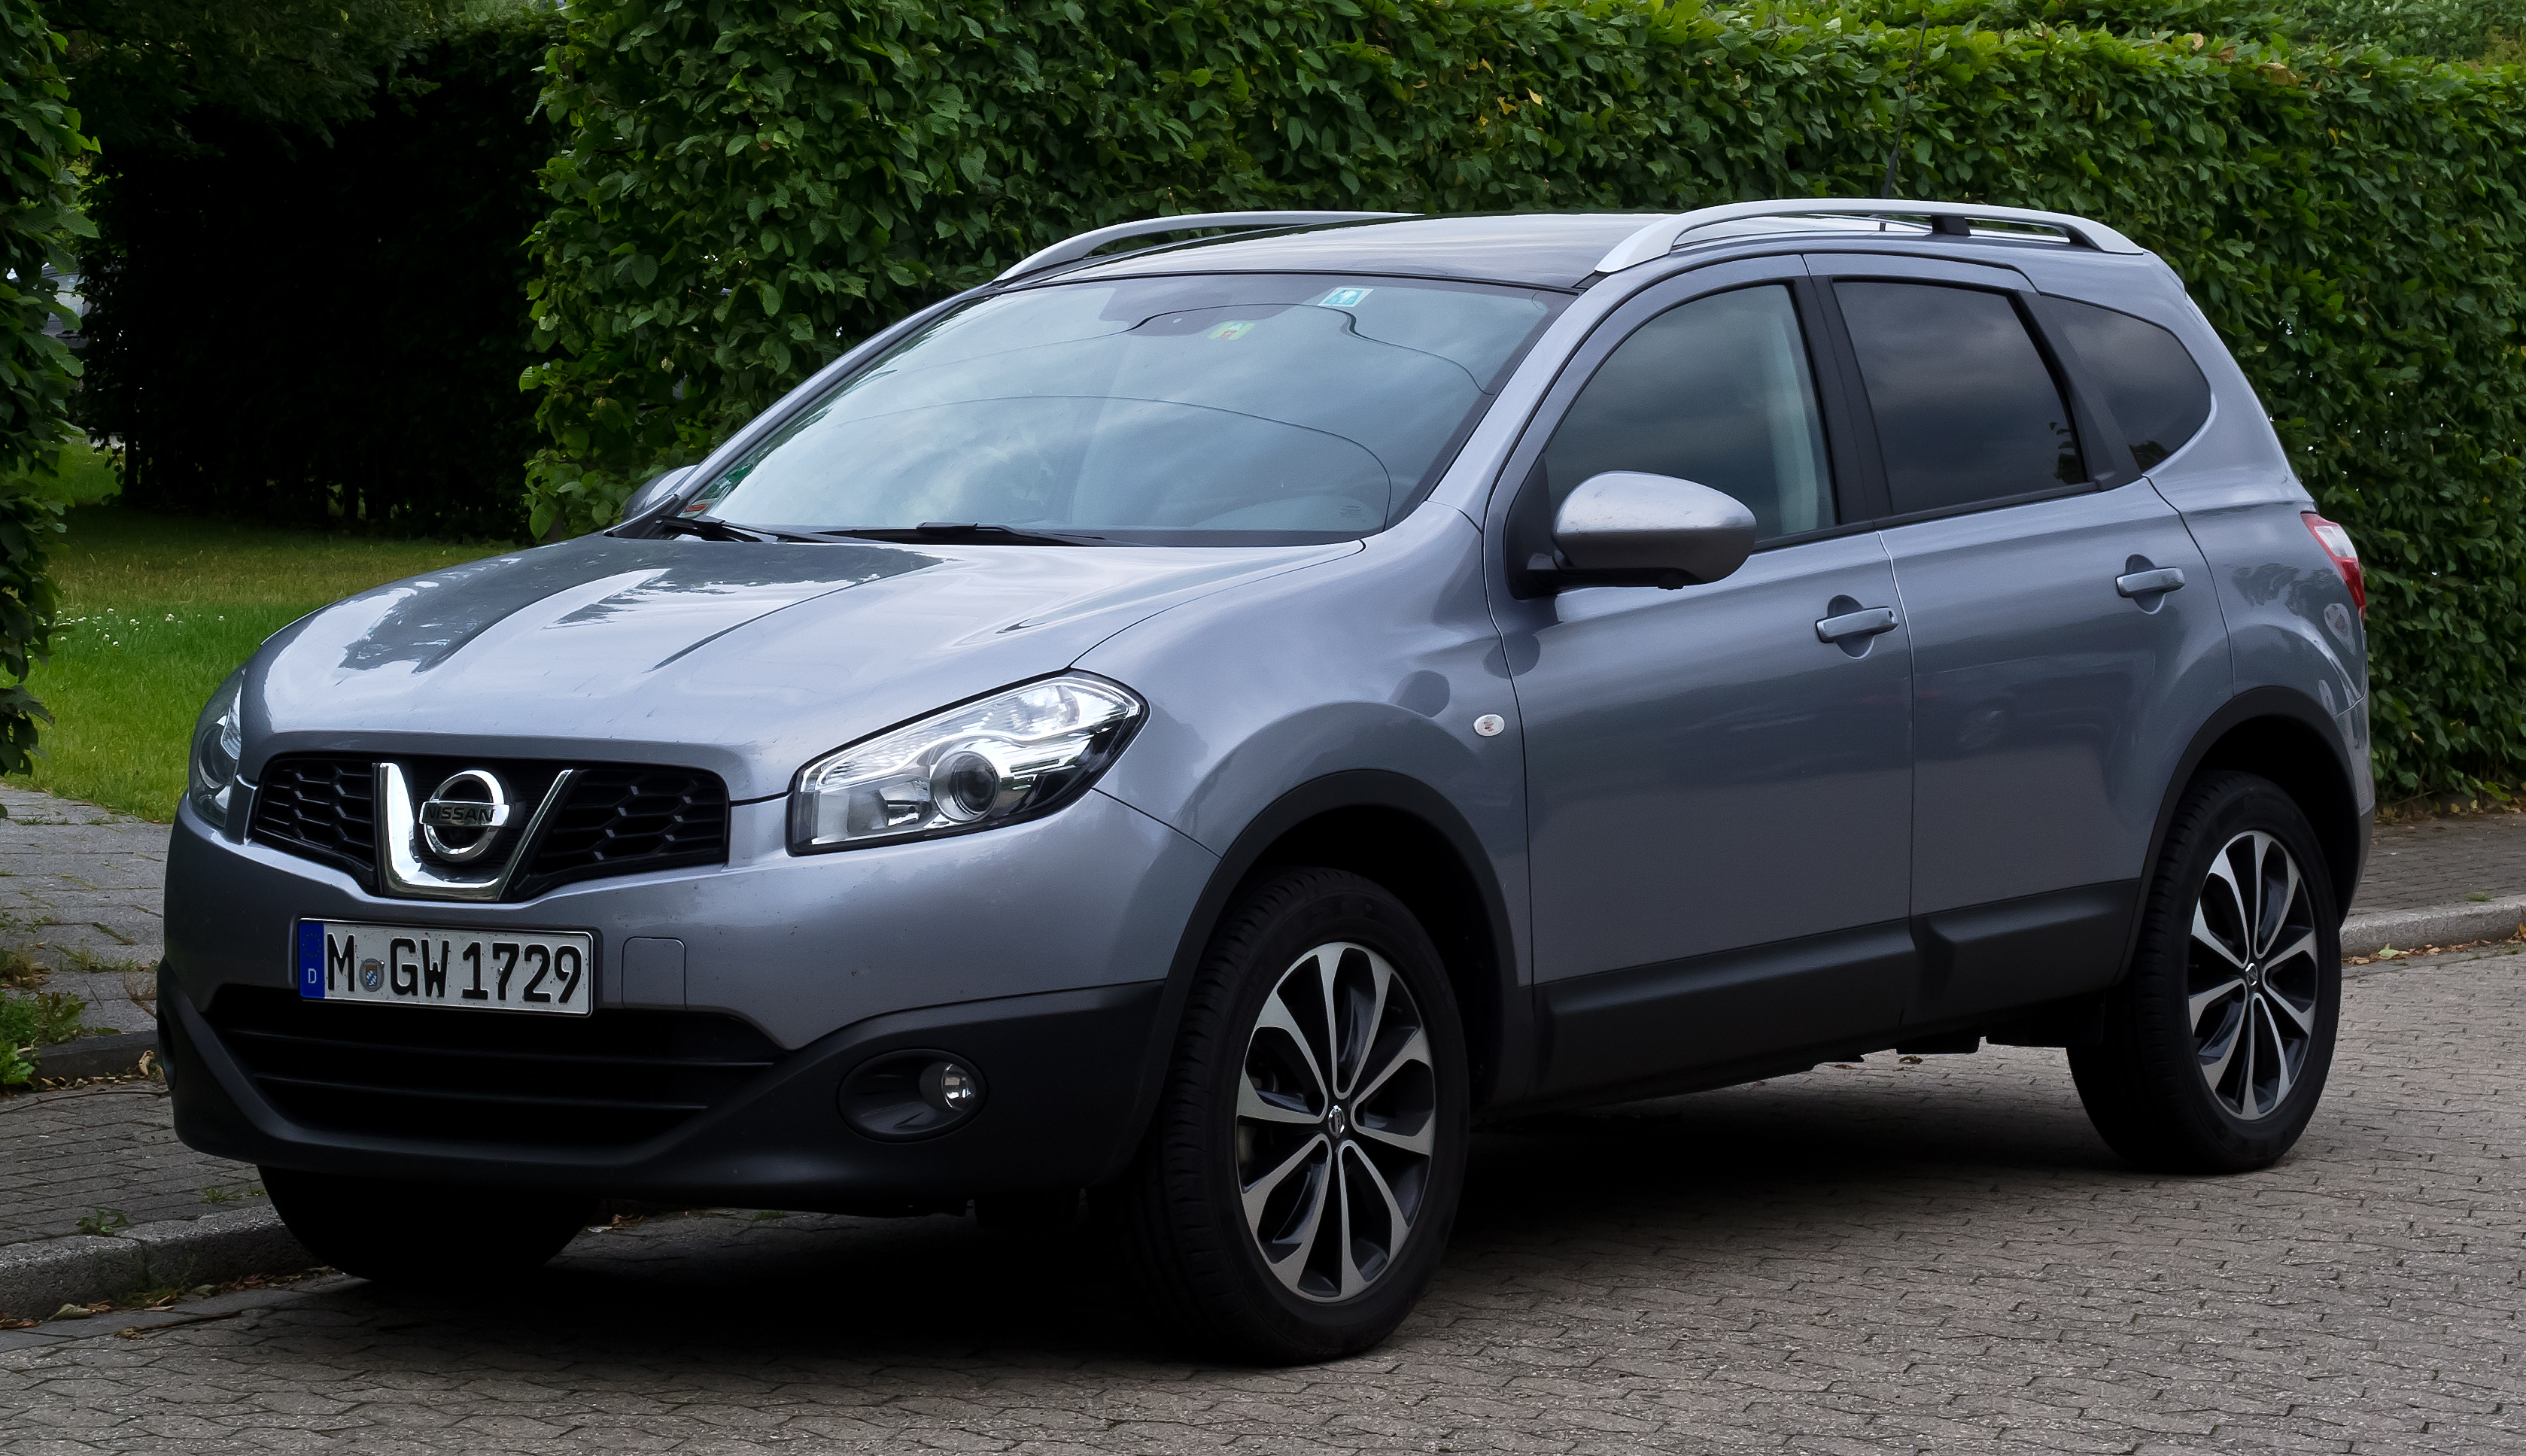 2013 nissan qashqai 2 pictures information and specs auto. Black Bedroom Furniture Sets. Home Design Ideas